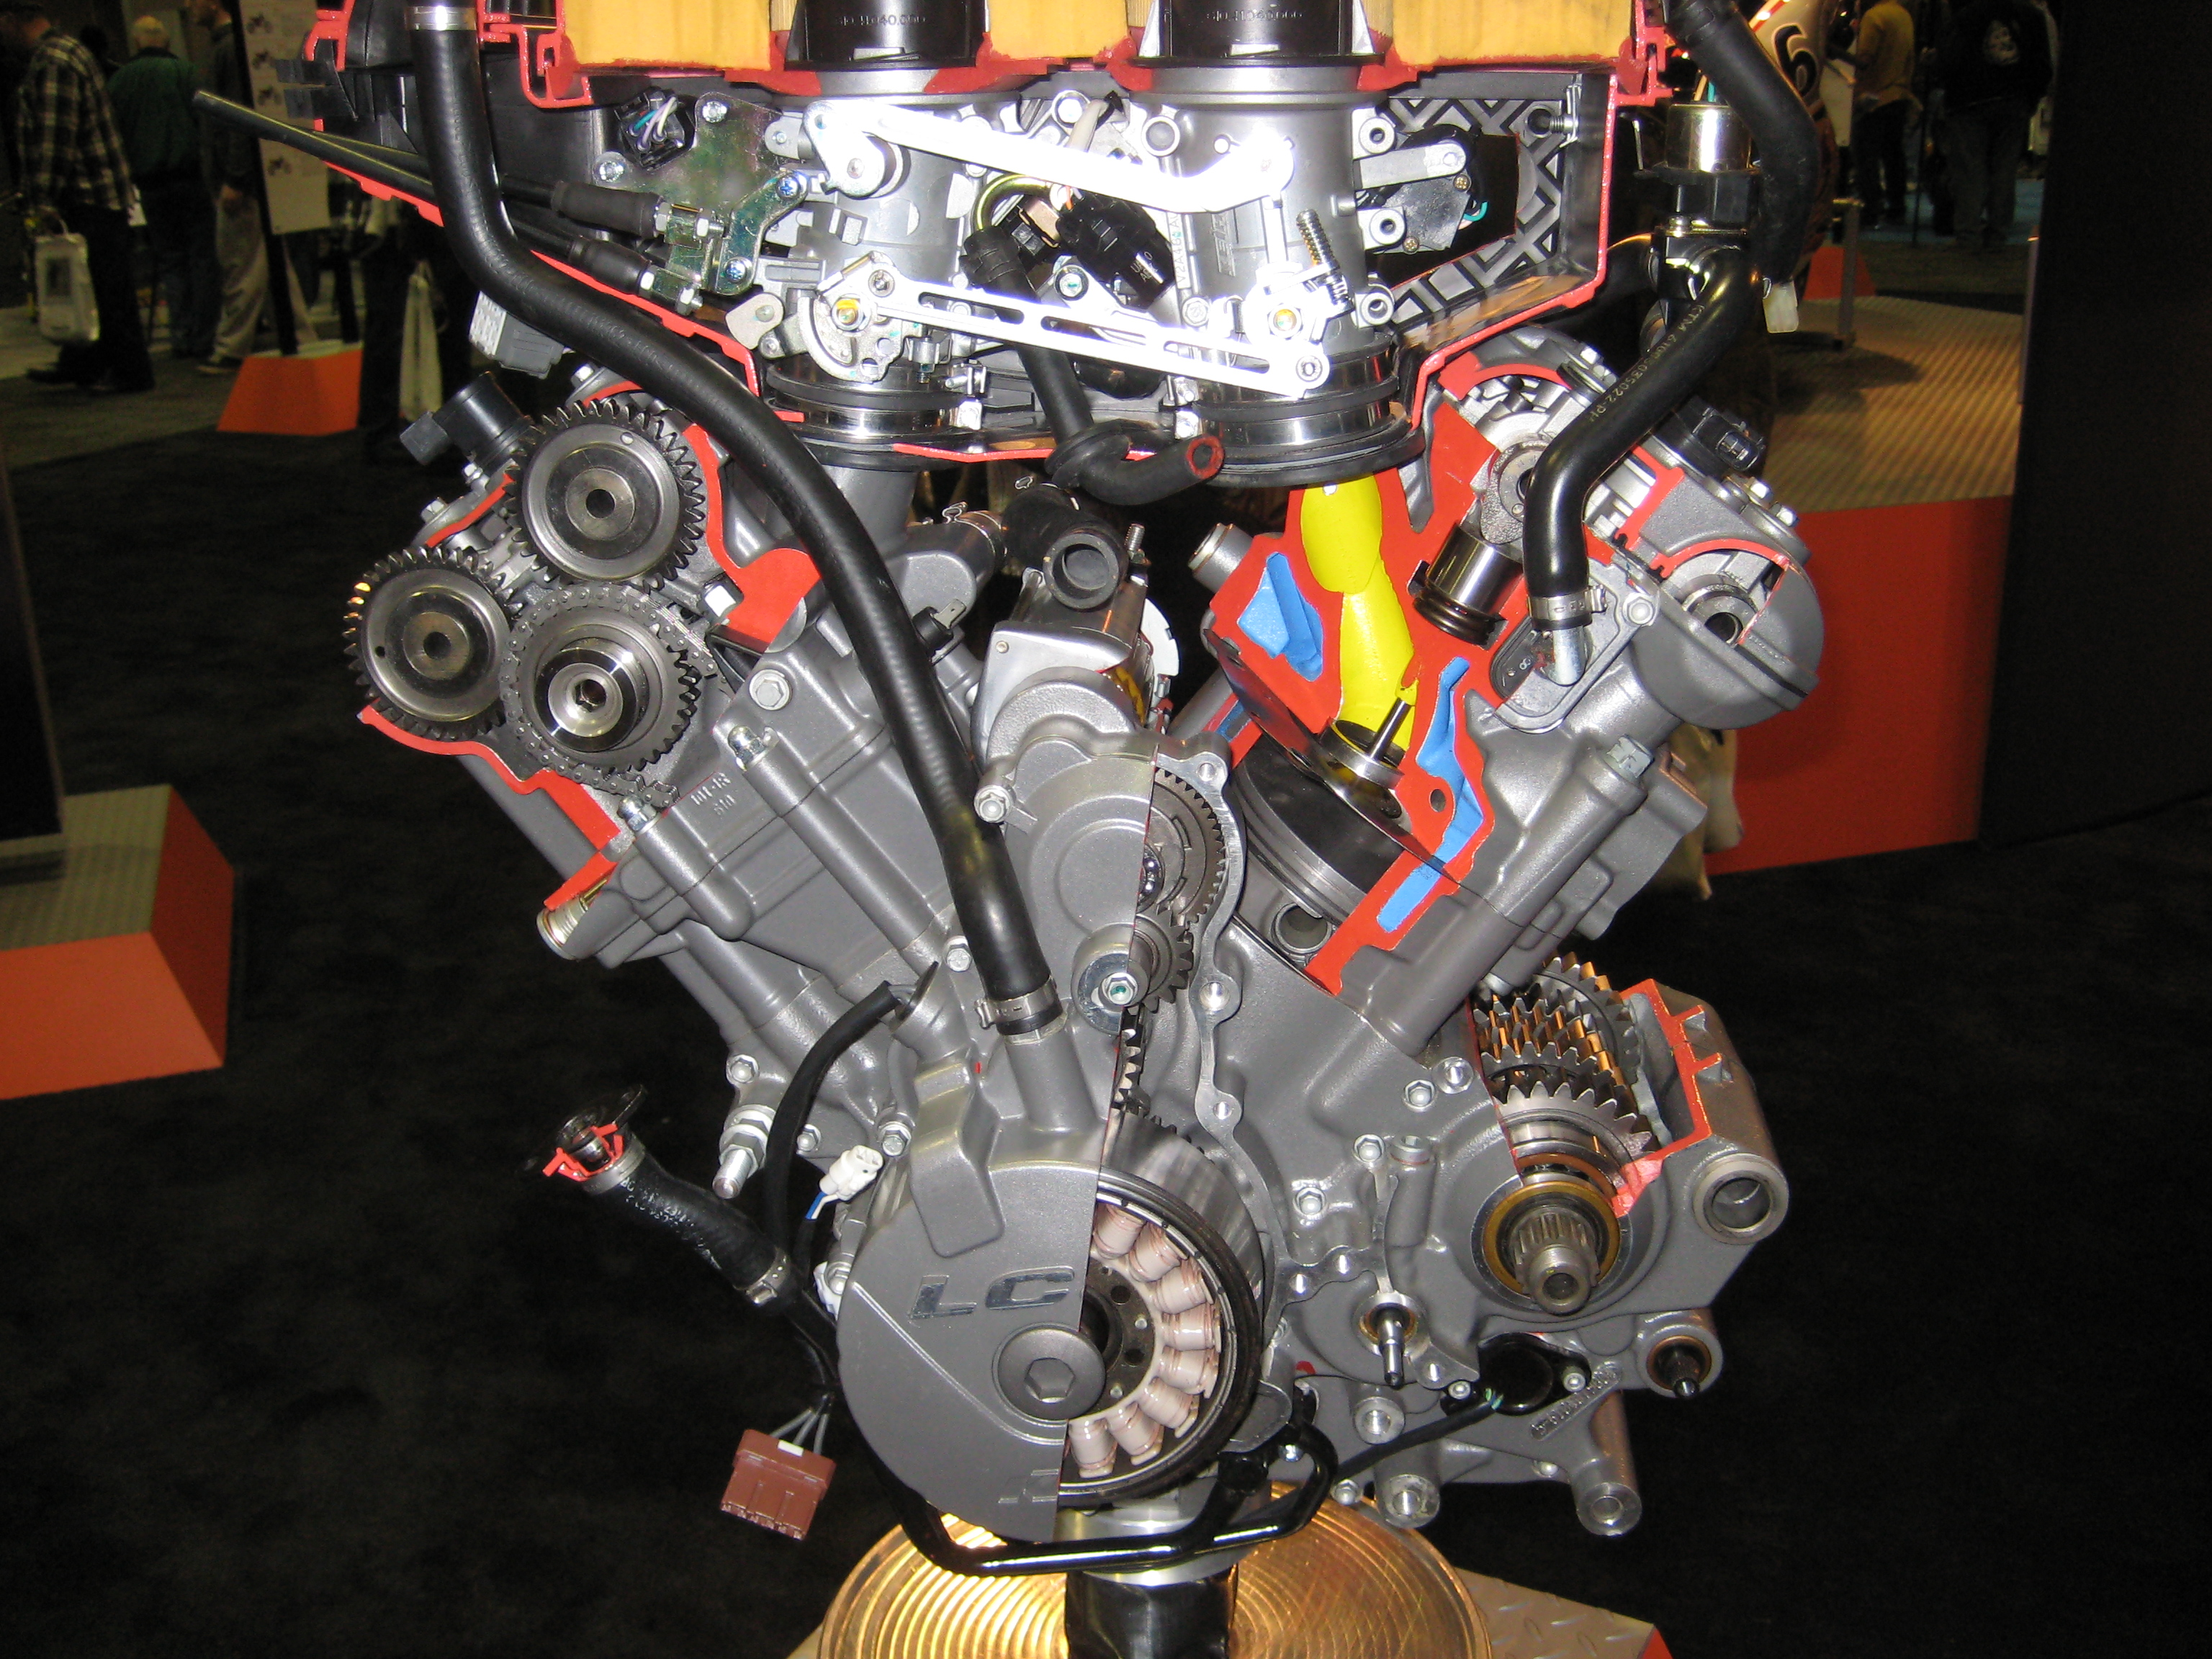 Ktm Engine For Sale